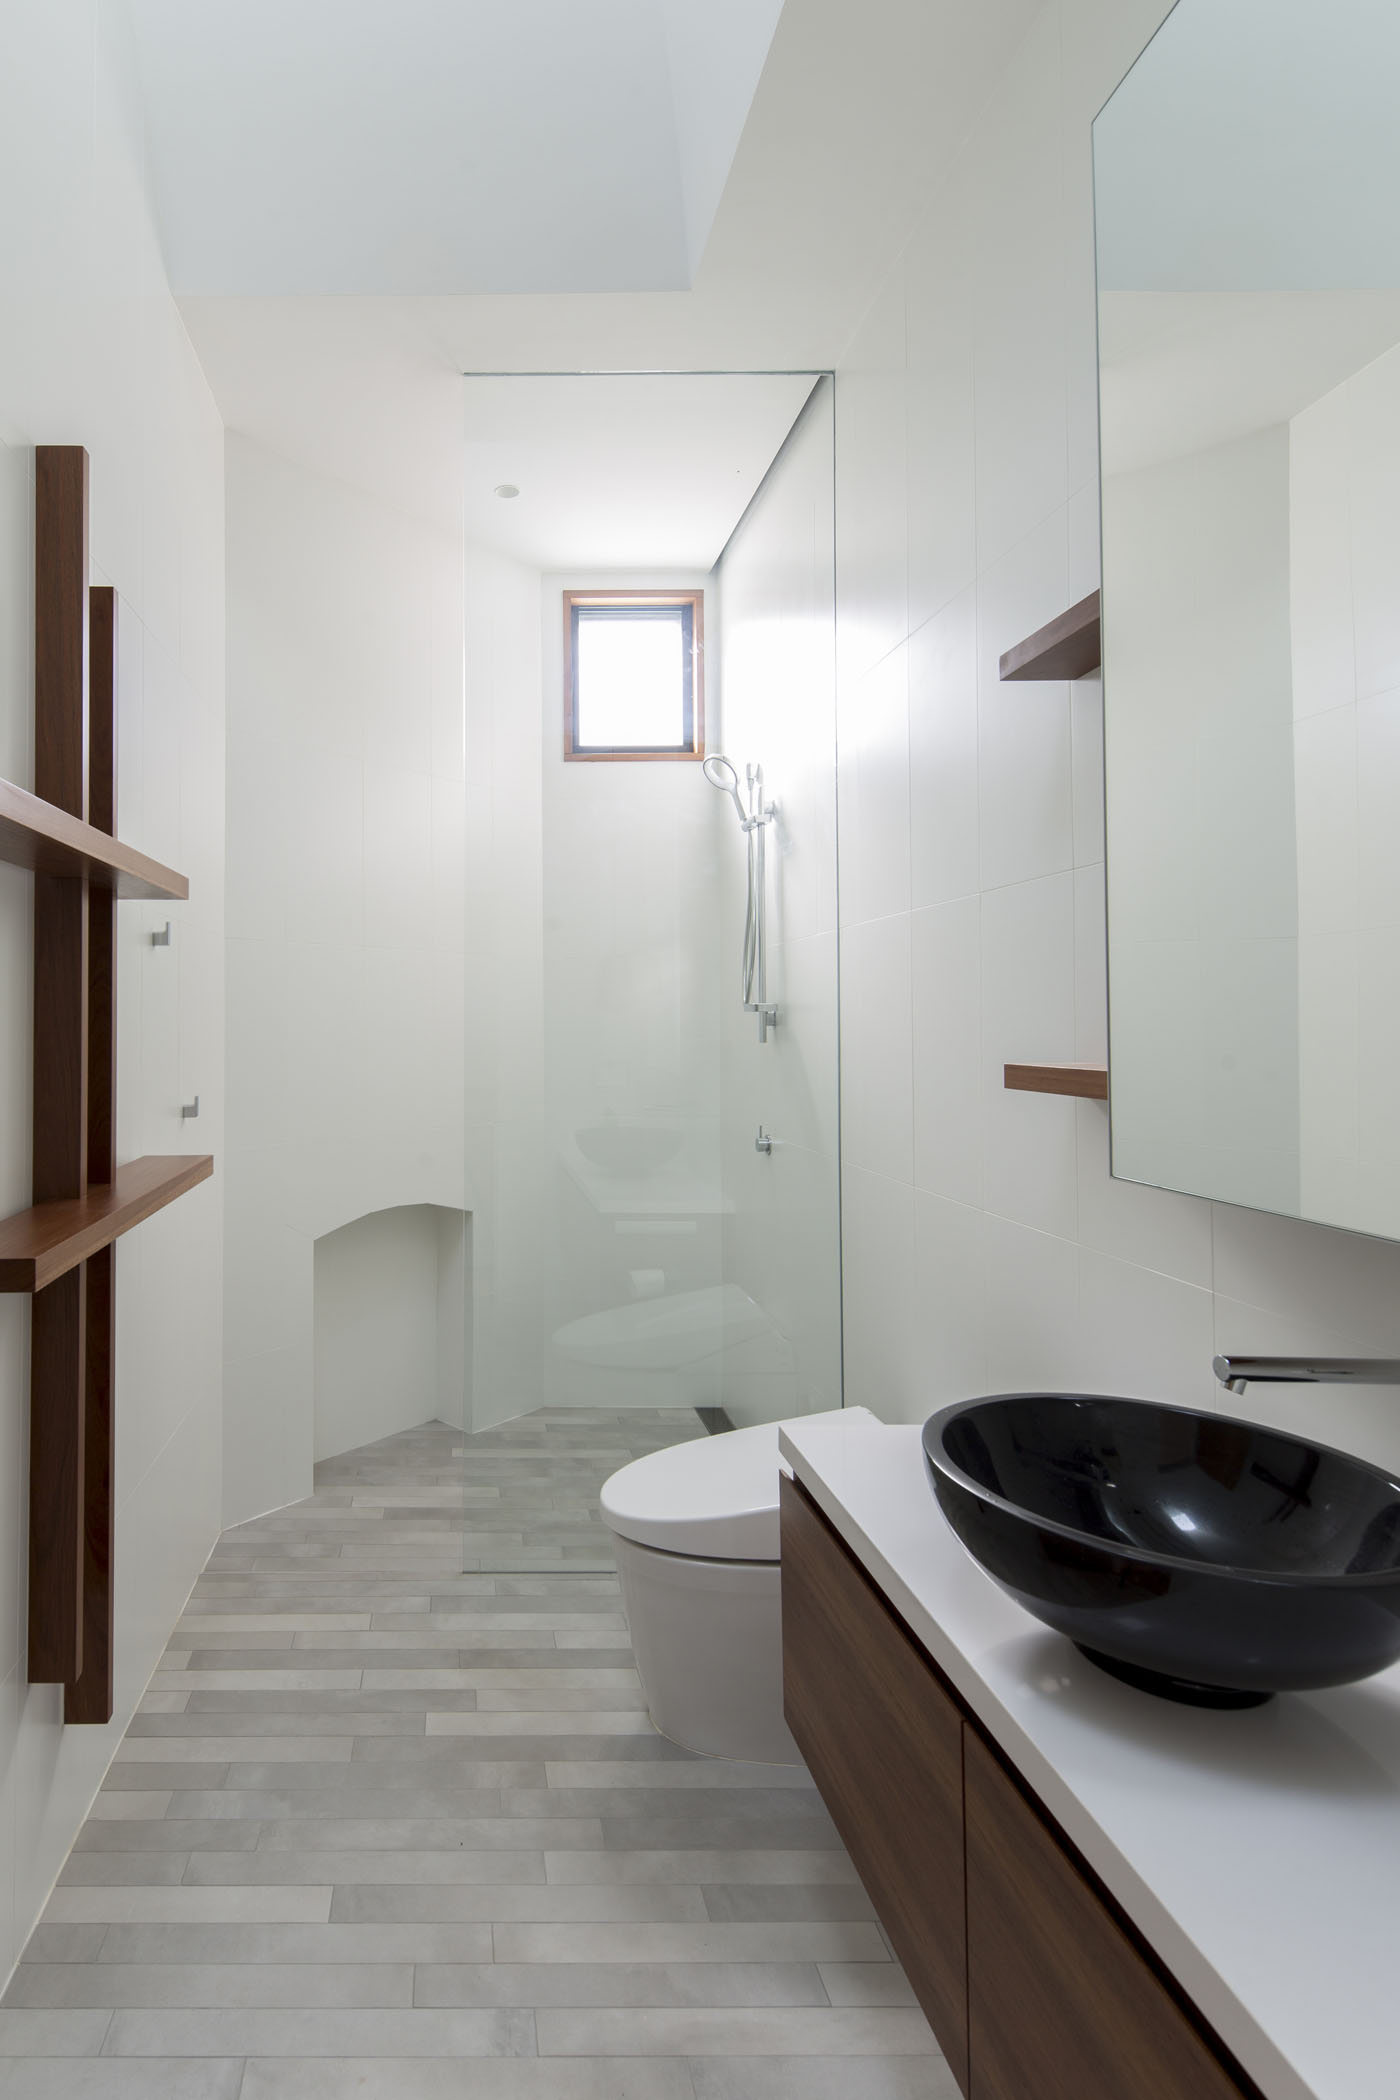 Sheppard Wilson House by Sydney award winning residential architecture office Sam Crawford Architects. Minimal bathroom featuring angular skylight and window